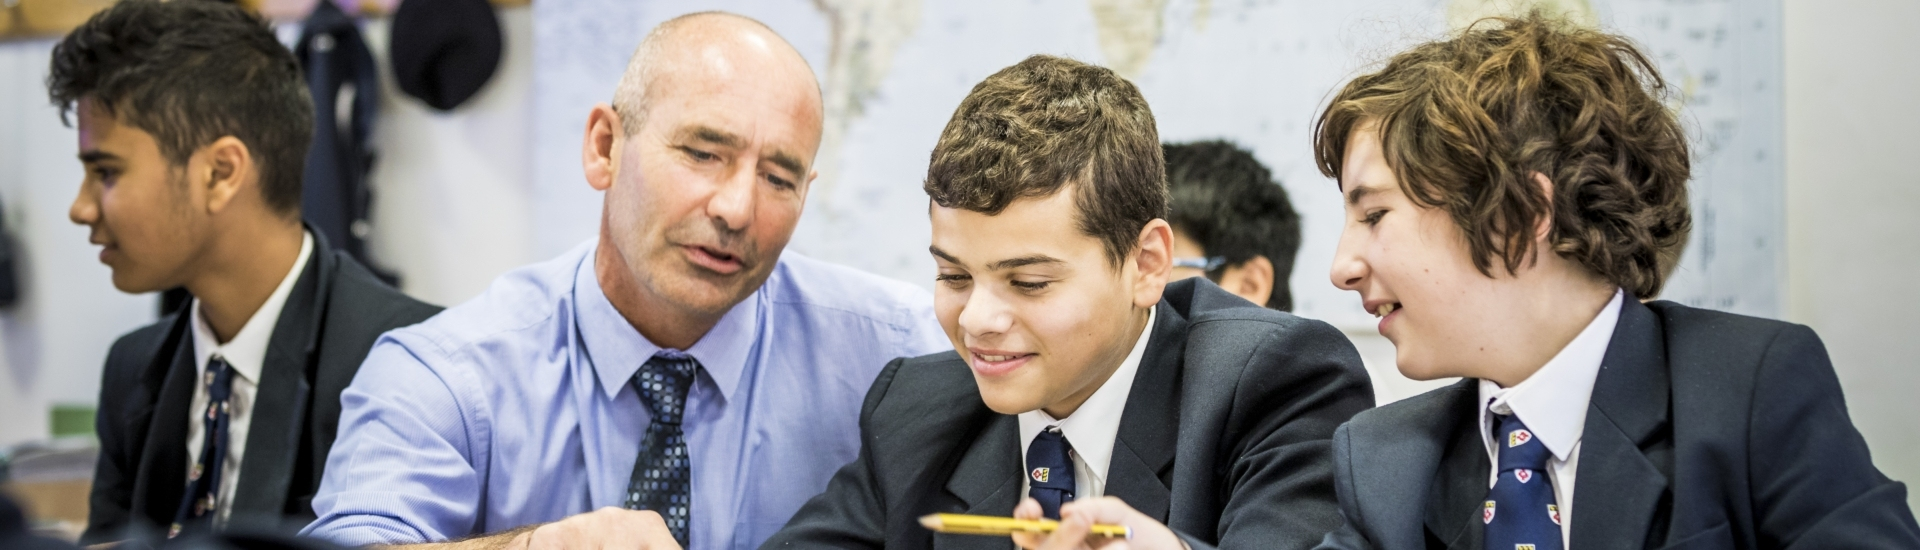 Fees | Independent Day & Boarding School In London | Mill Hill School throughout Garden House School London Fees